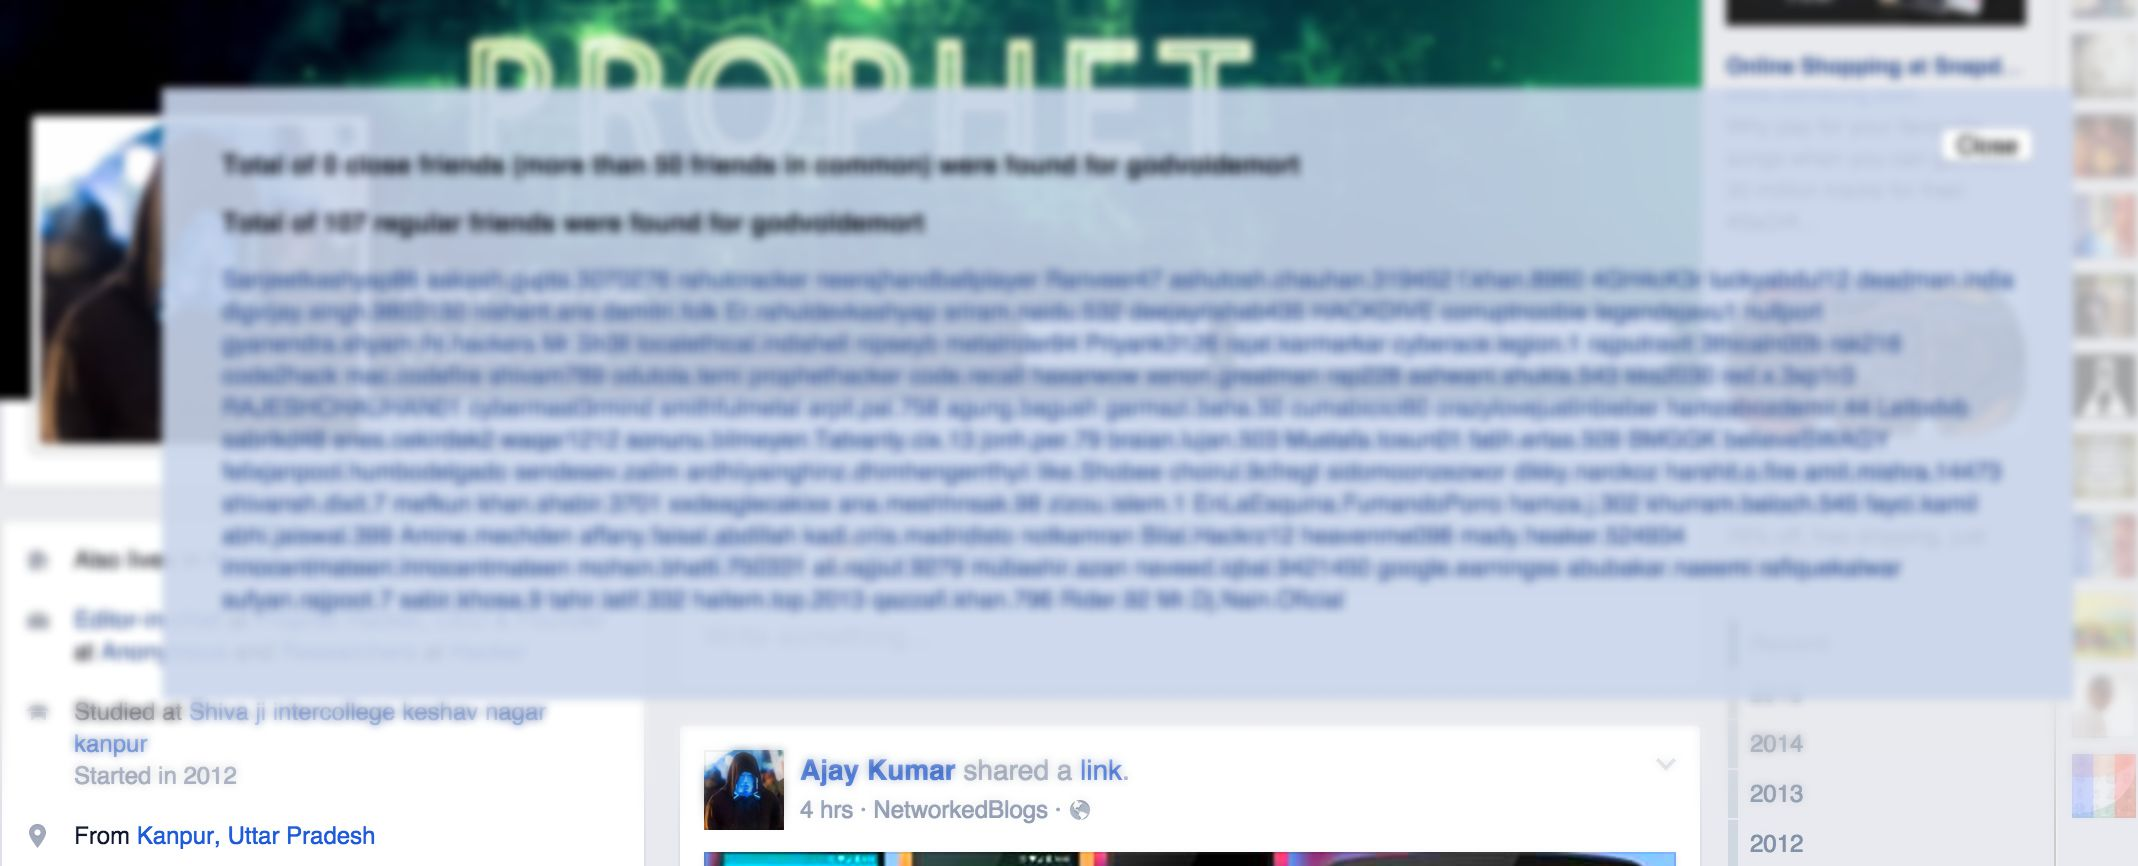 How To See Someone's Hidden Friends List On Facebook in 1 Min